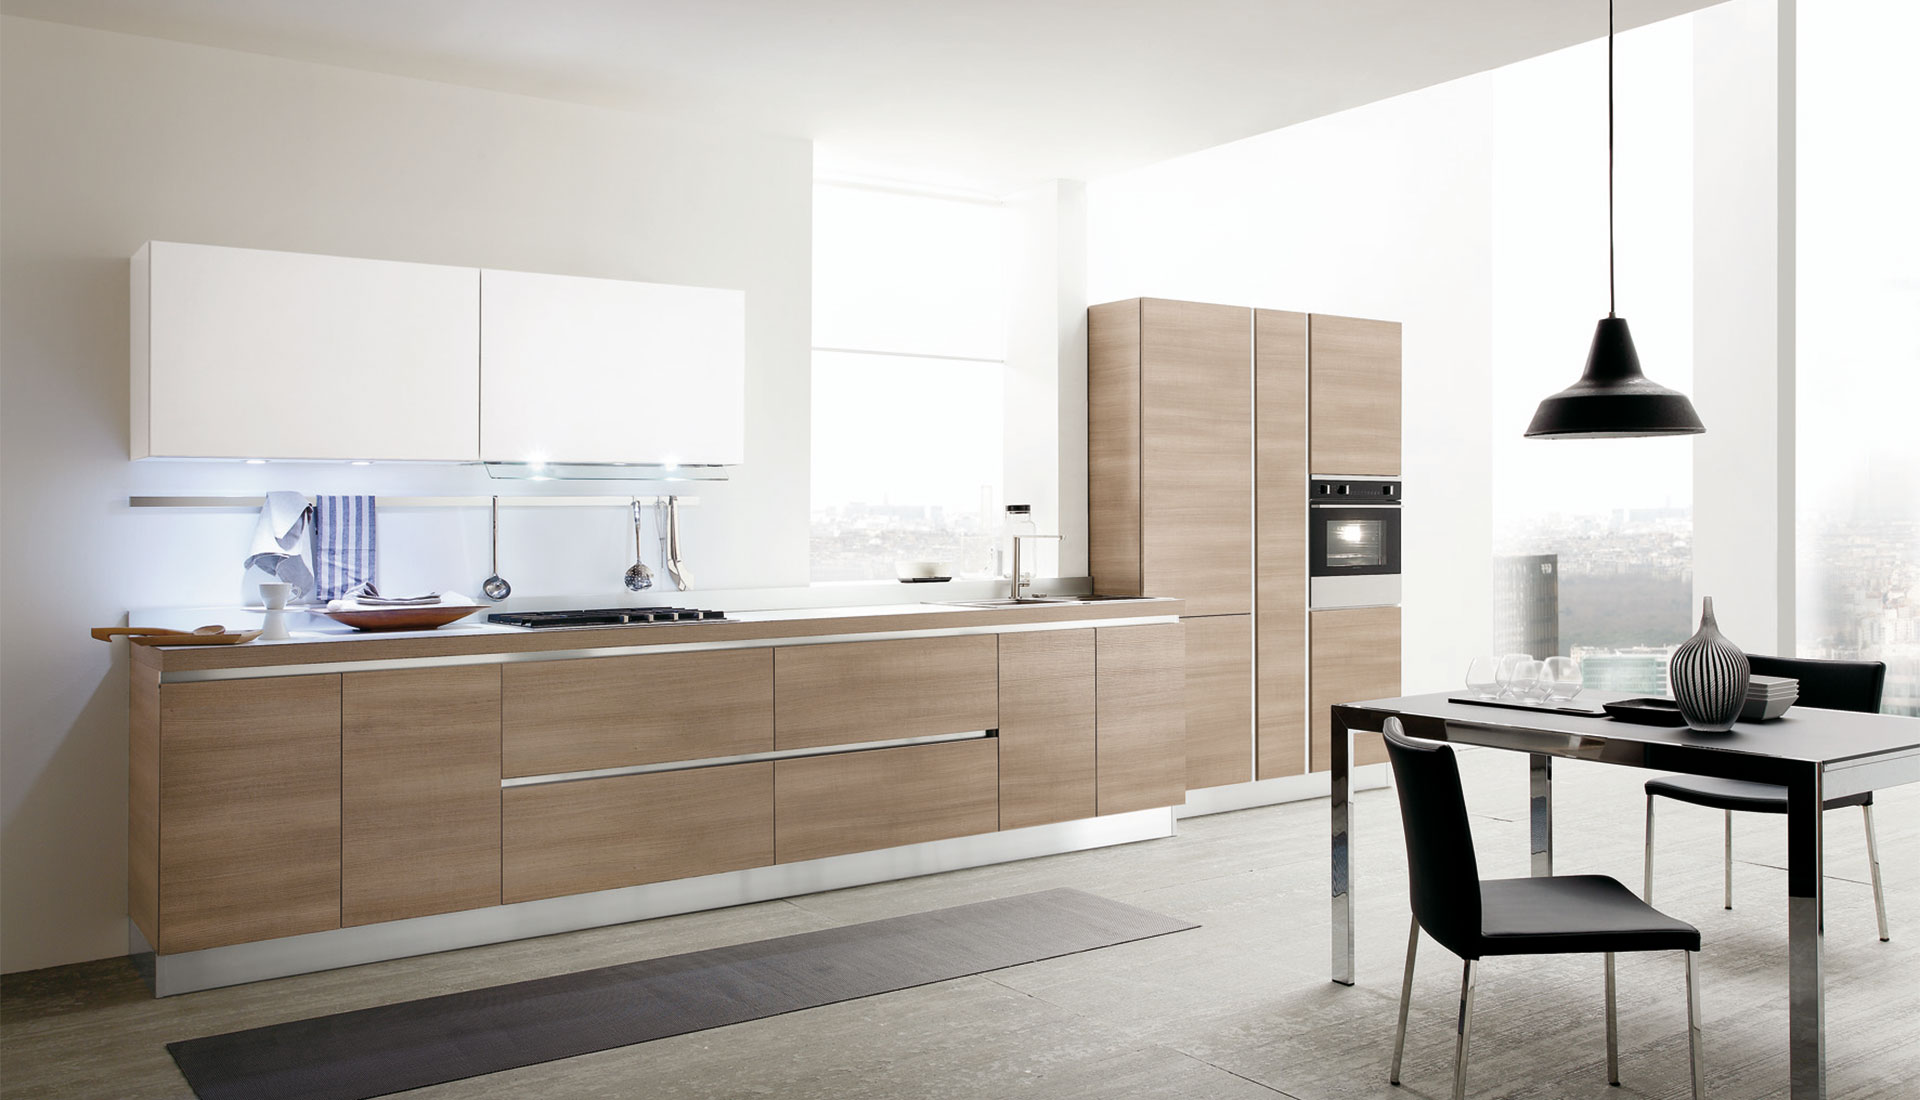 The modern kitchen model Joy by Gicinque is enriched by